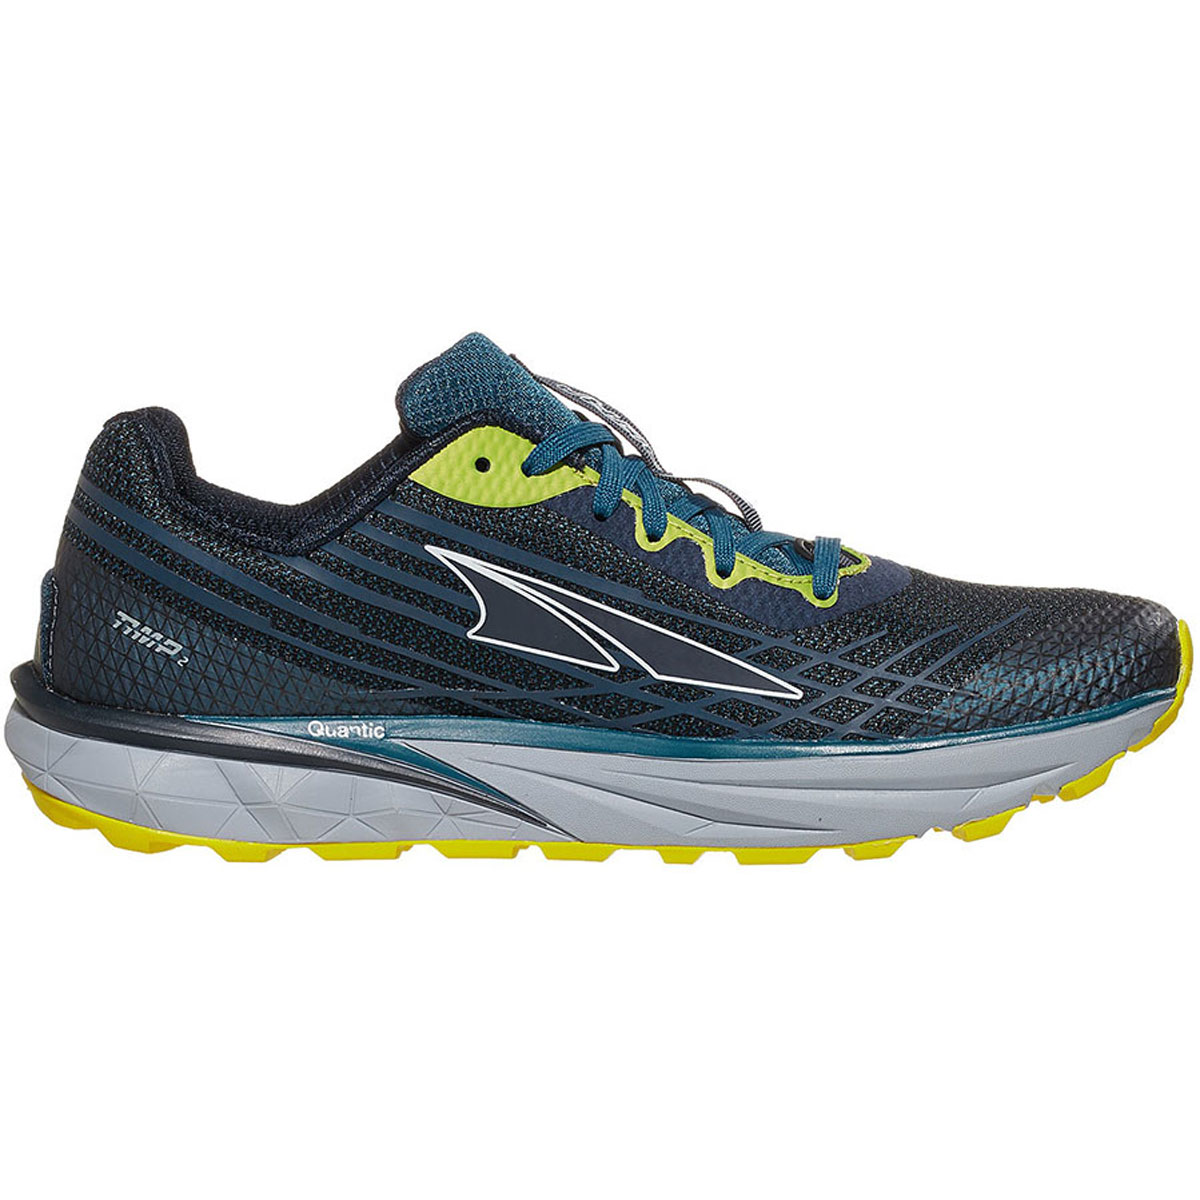 Men's Altra Timp 2 Running Shoe - Color: Moroccan Blue/Yellow (Regular Width) - Size: 10.5, Moroccan Blue/Yellow, large, image 1